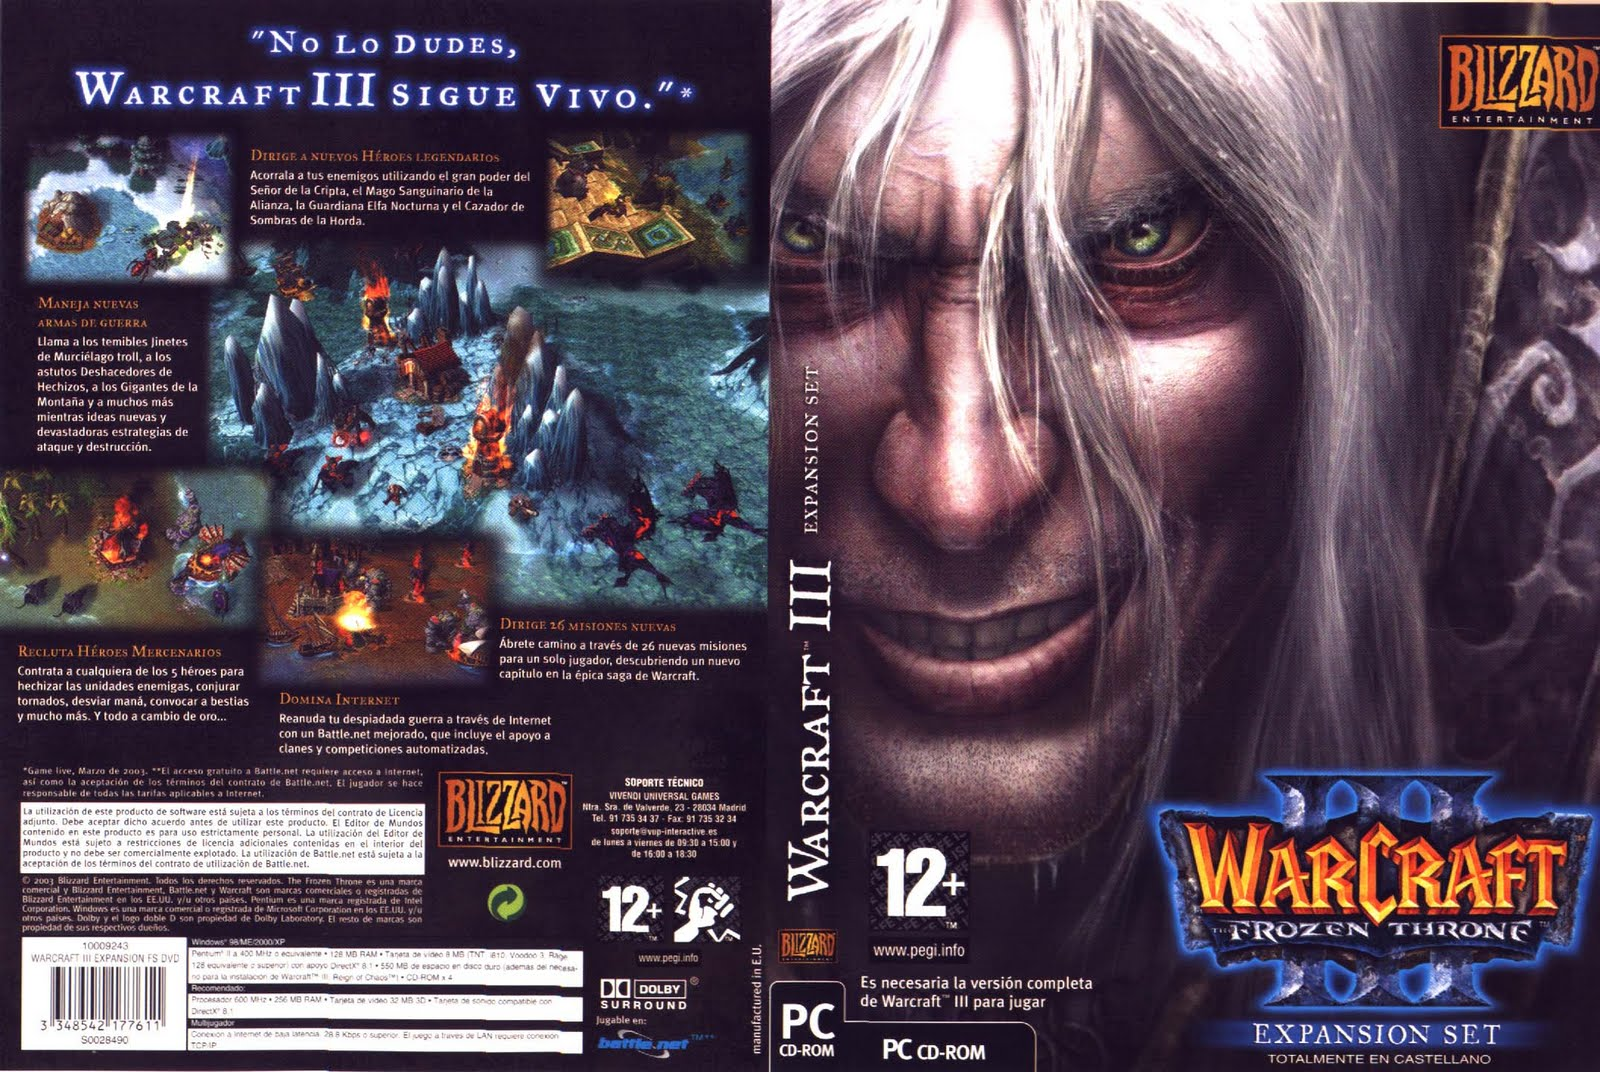 Sex patch warcraft 3 frozen throne naked thumbs